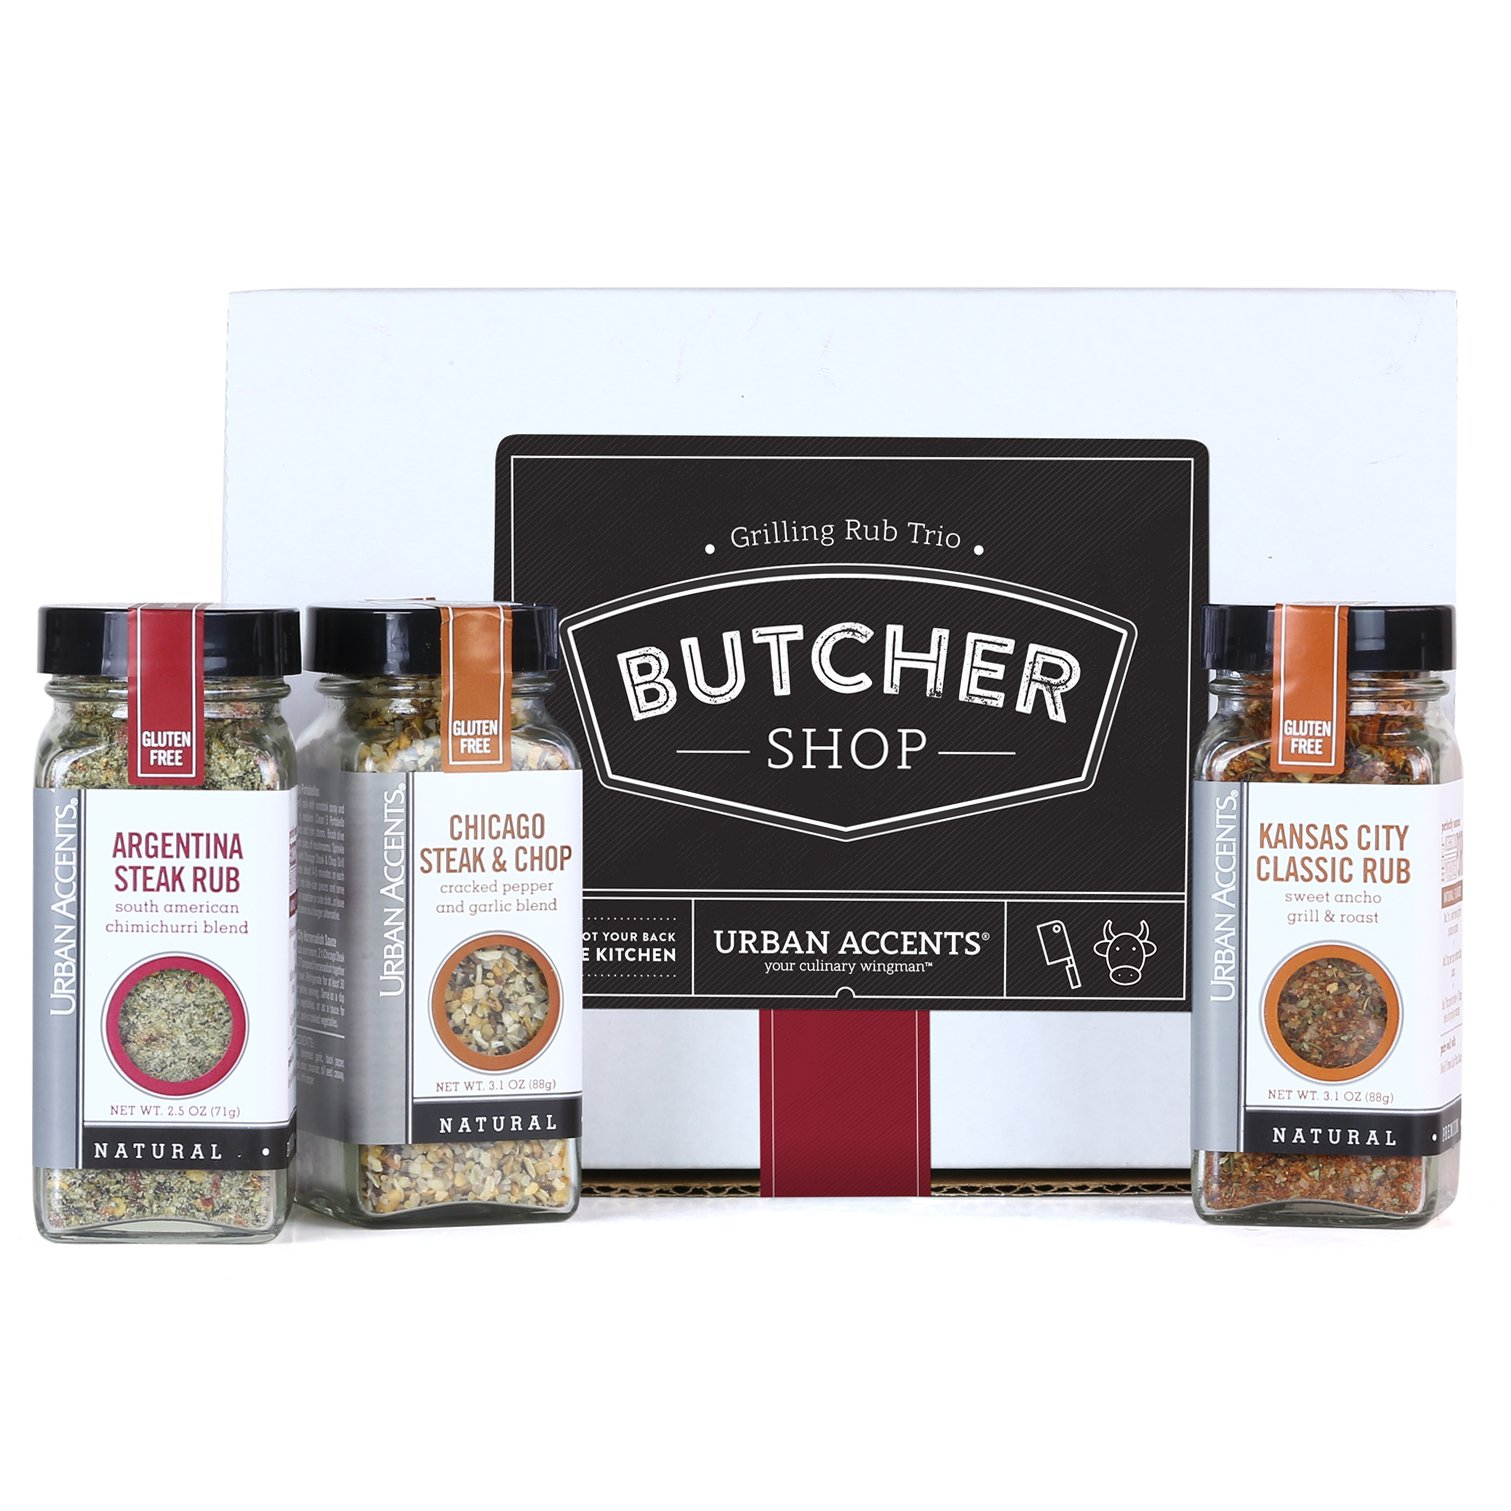 BUTCHER SHOP, A Gourmet Grilling Rub Trio of Spices Gift Set, Perfect for Weddings, Housewarmings or Any Occasion - Urban Accents